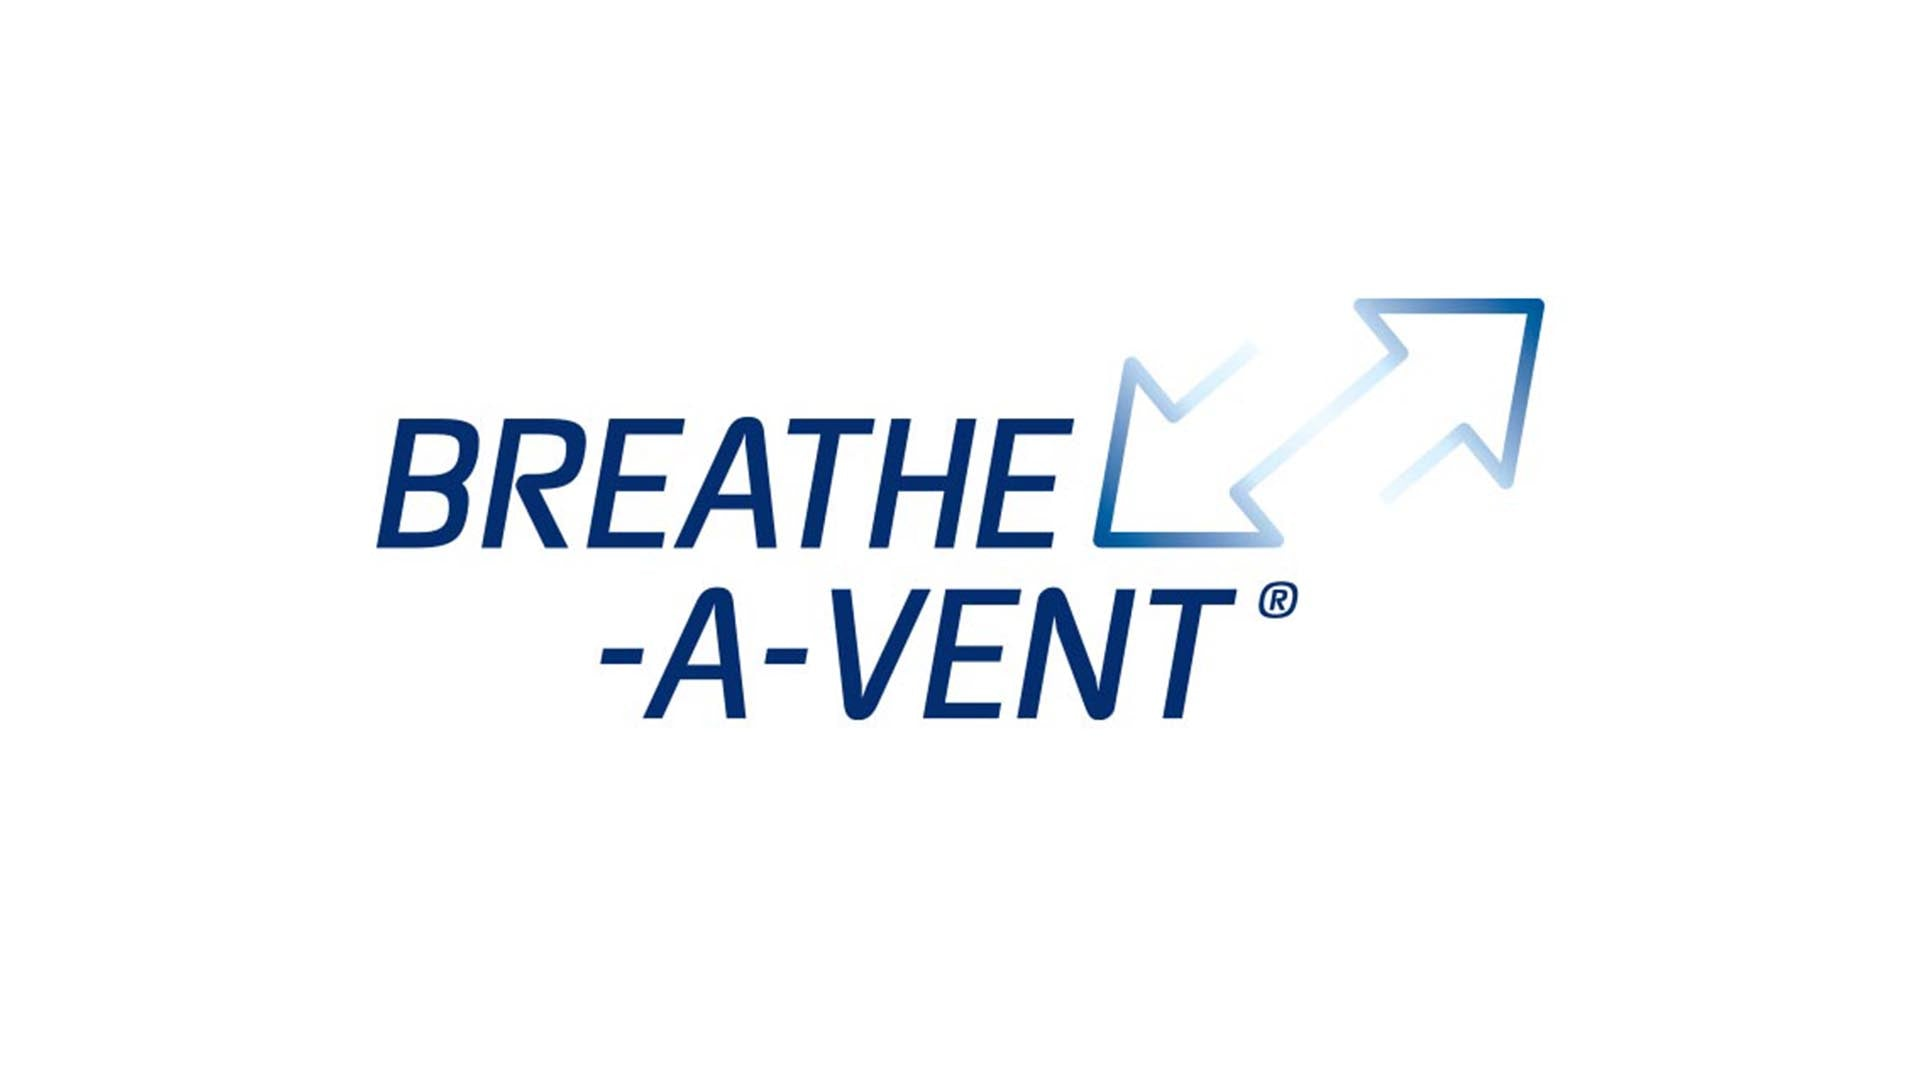 Breathe-a-vent | Sleep Corp Healthcare